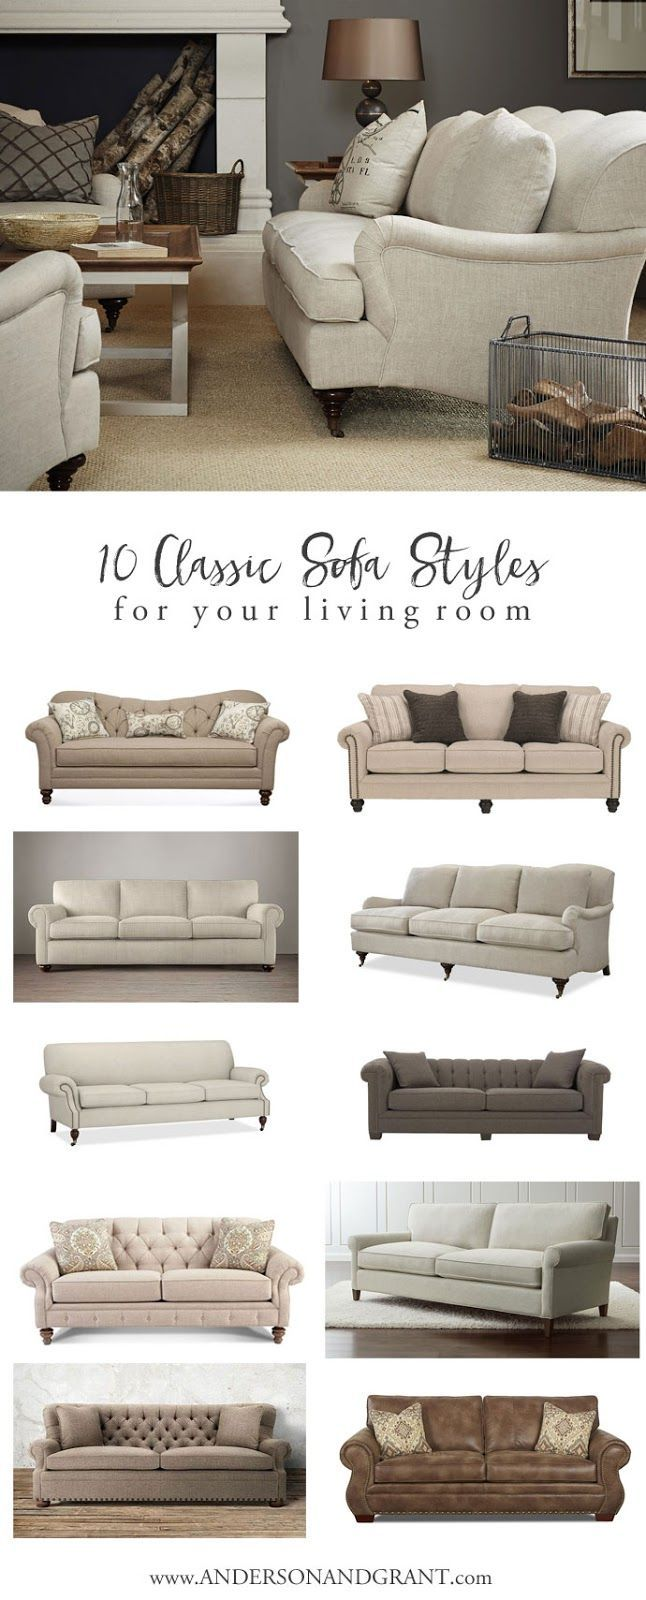 Overwhelmed When Trying To Find The Perfect Sofa For Your Living Room Check Out This Post With Classic Sofa Classic Sofa Styles Living Room Decor On A Budget